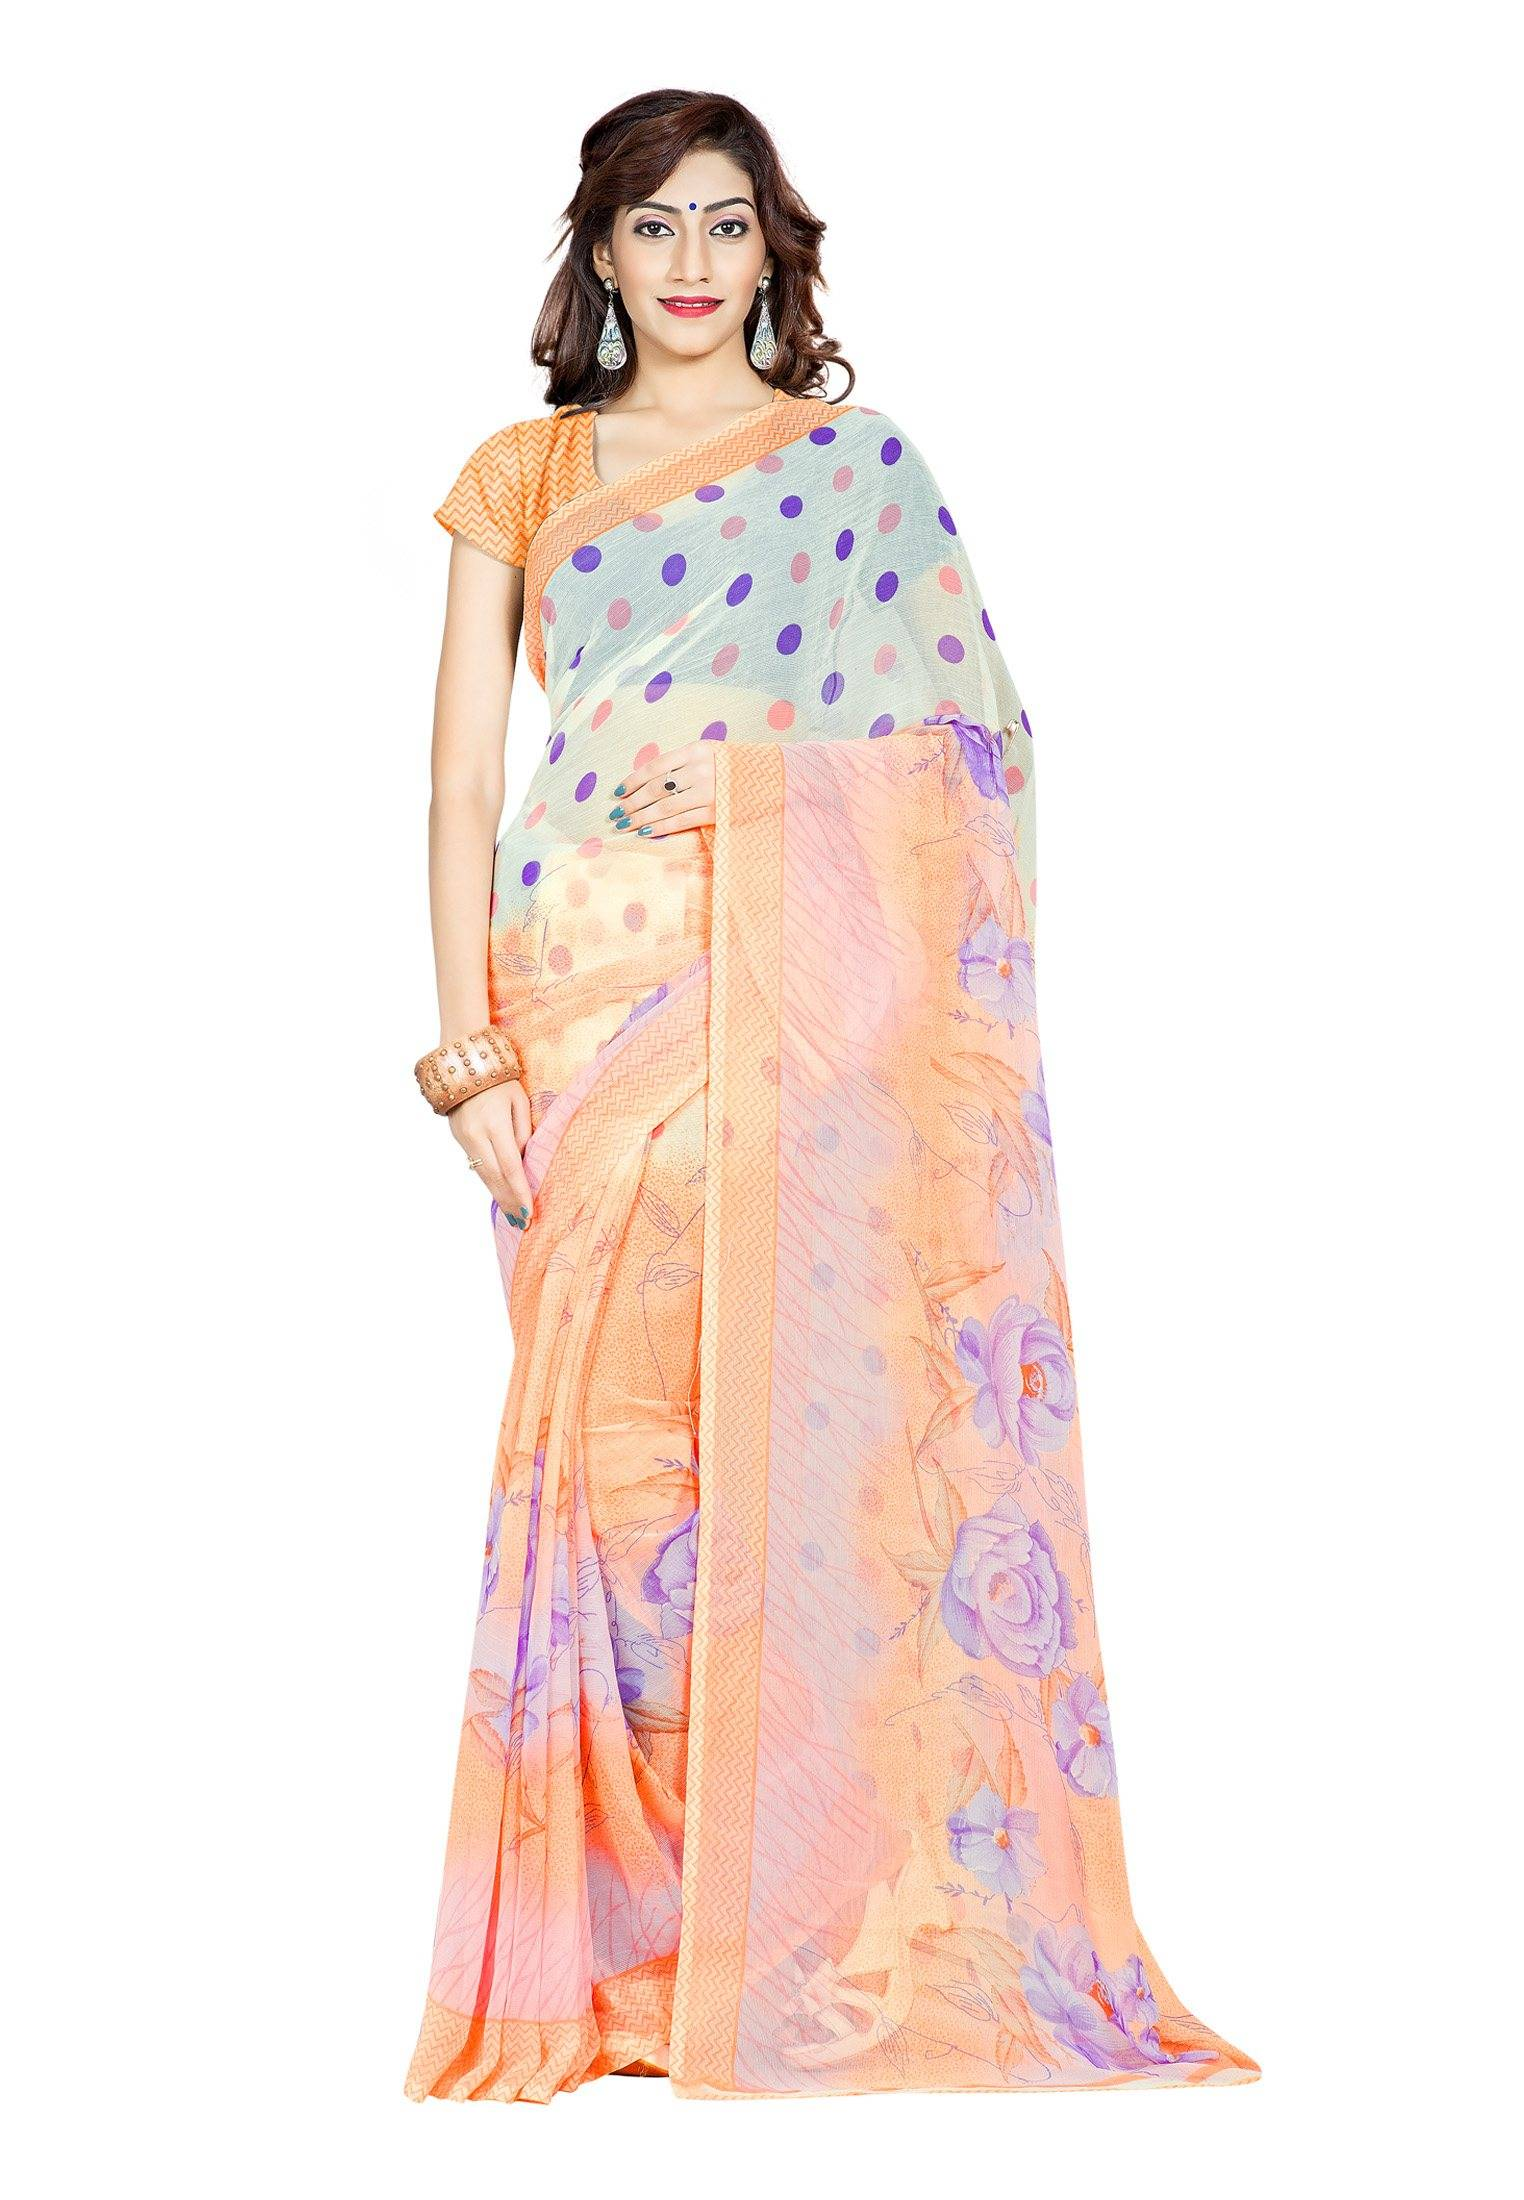 Ambaji Casual Wear Multi Colored Printed Chiffon Saree/Sari